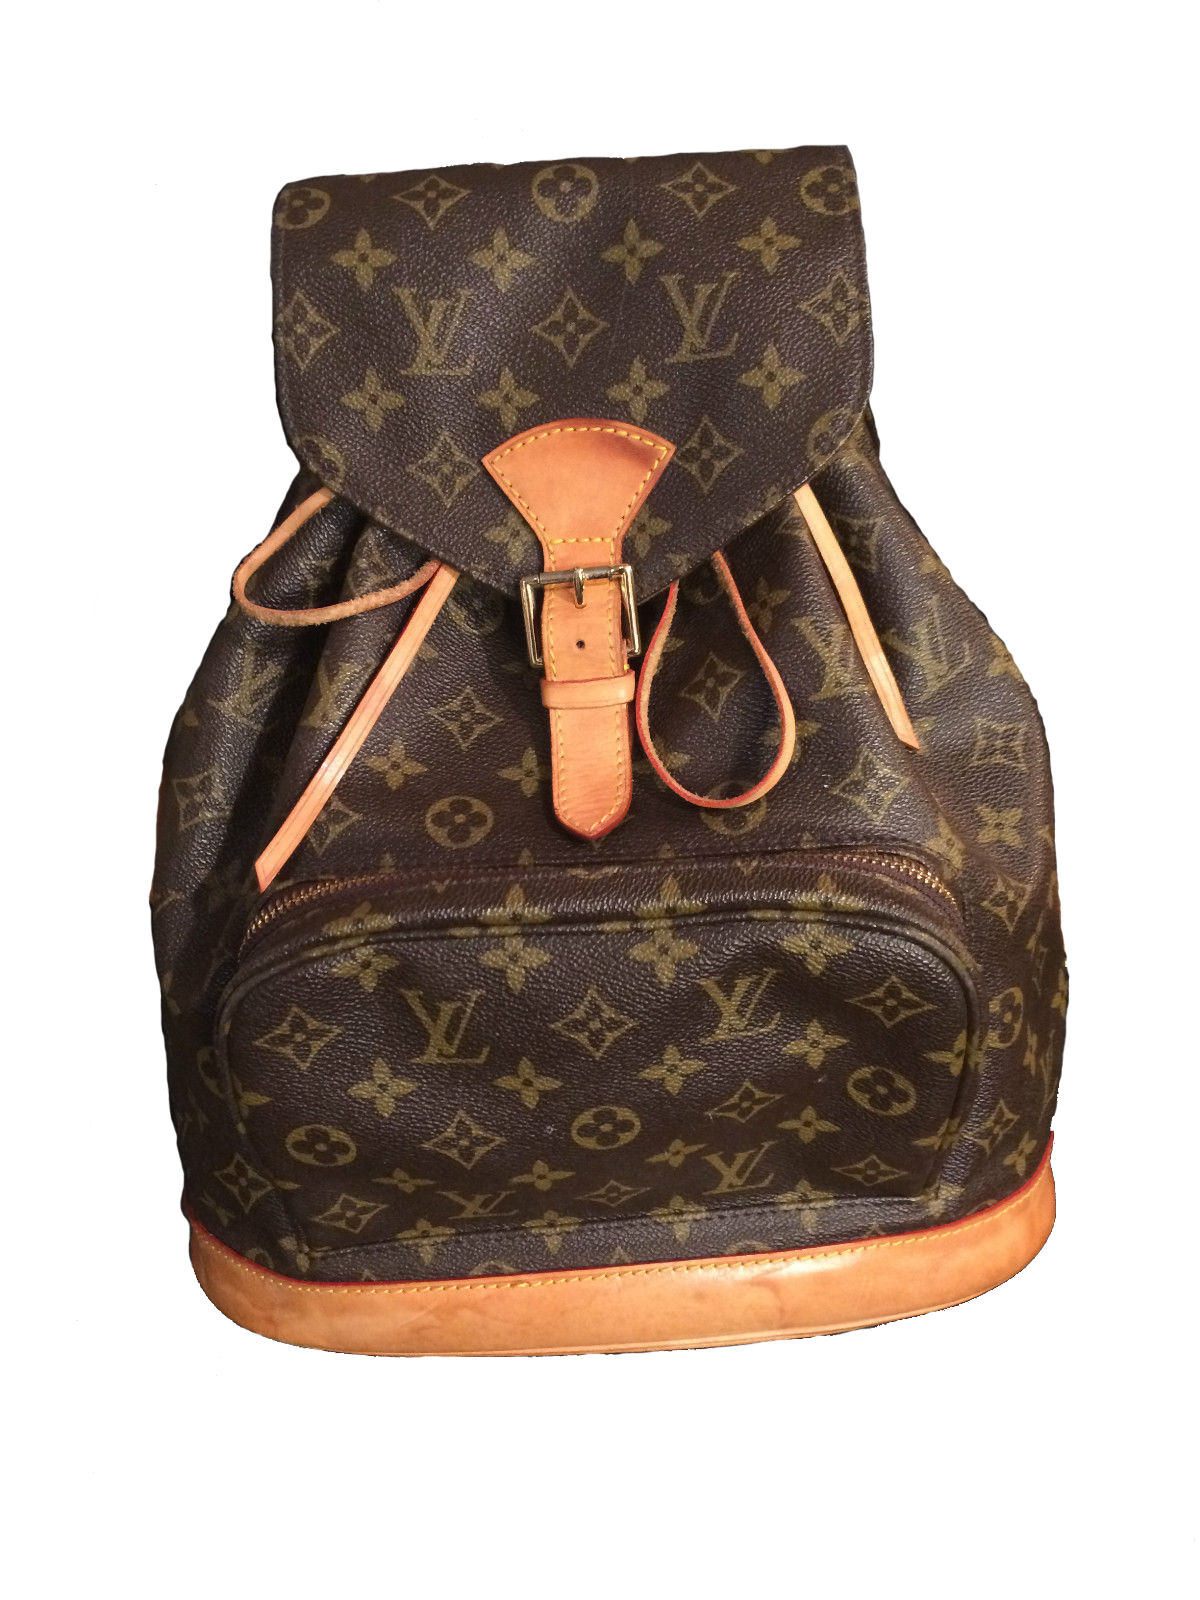 louis vuitton brand audit